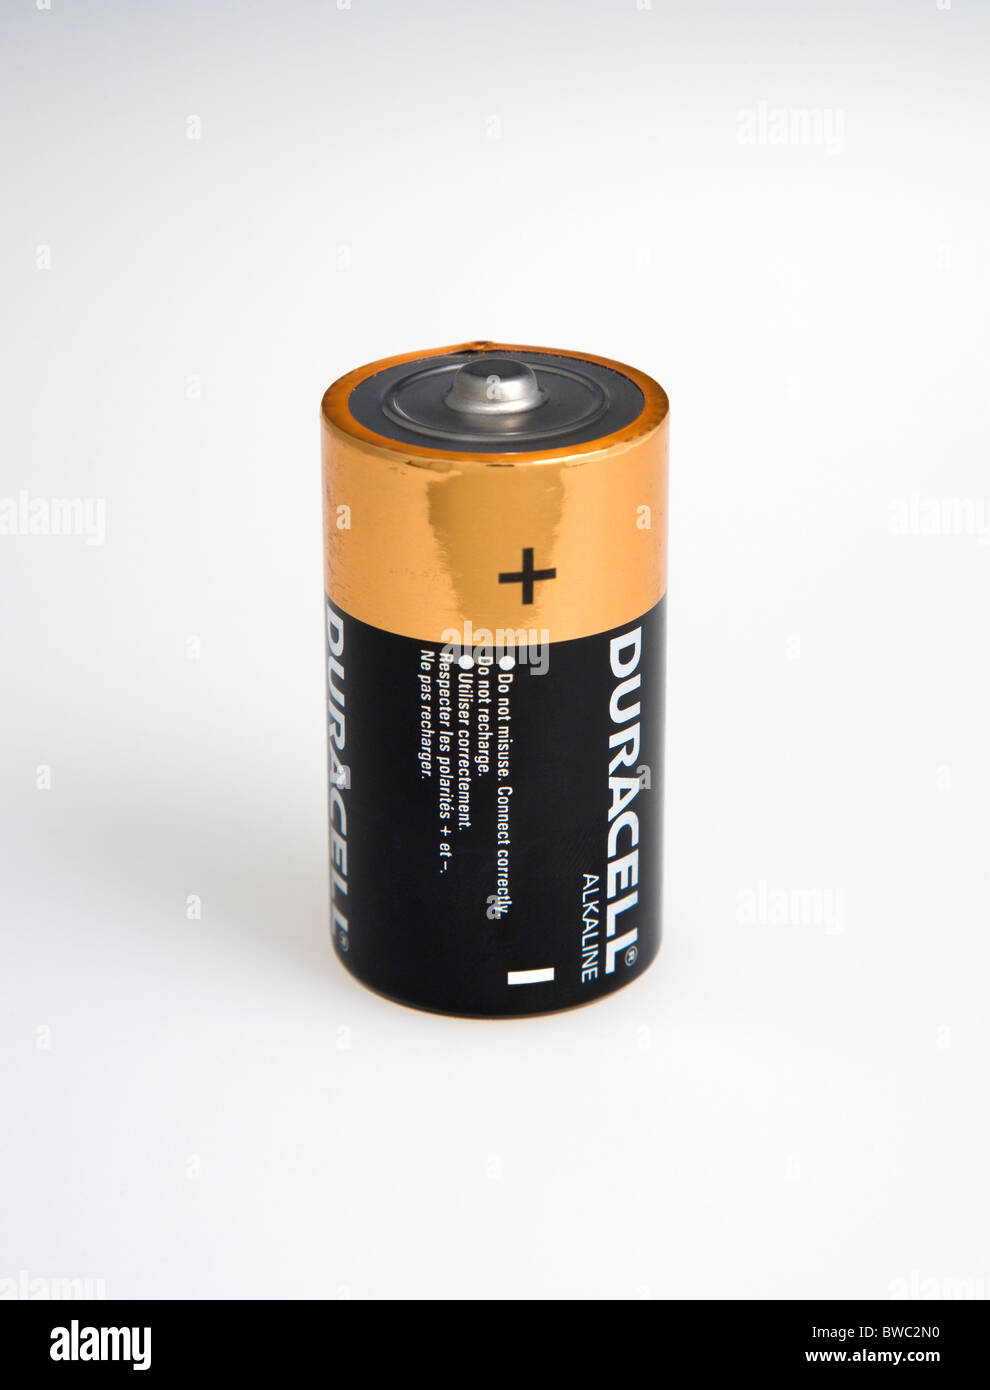 Looking for DURACELL D Standard Battery, Duracell Procell, Alkaline, PK12 (5LE21)? Grainger's got your back. Price:$ Easy ordering & convenient delivery. Log-in or register for your a3rfaktar.ml: $